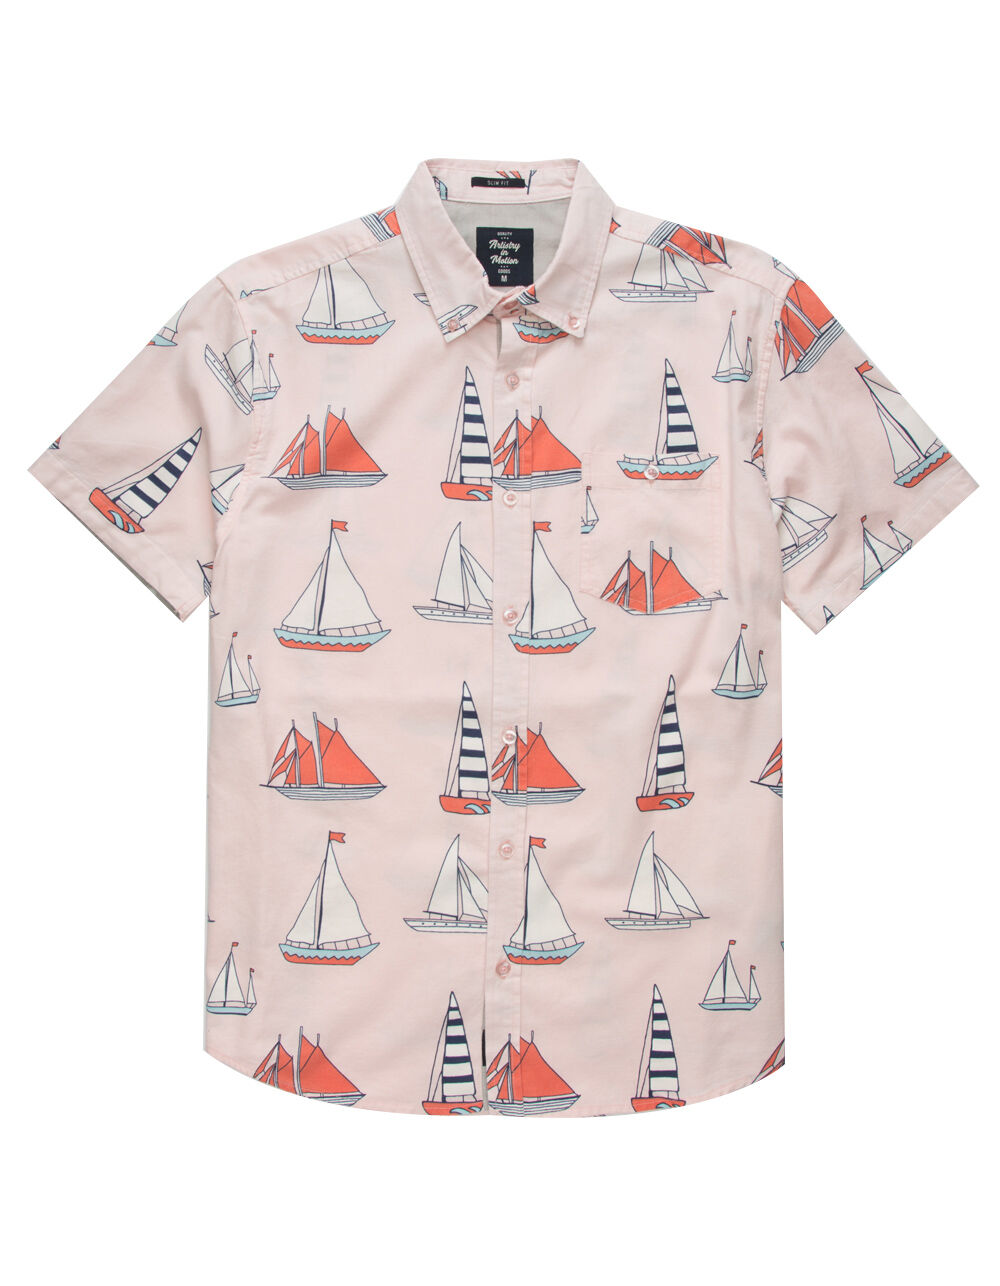 Image of ARTISTRY IN MOTION YACHT CLUB SHIRT